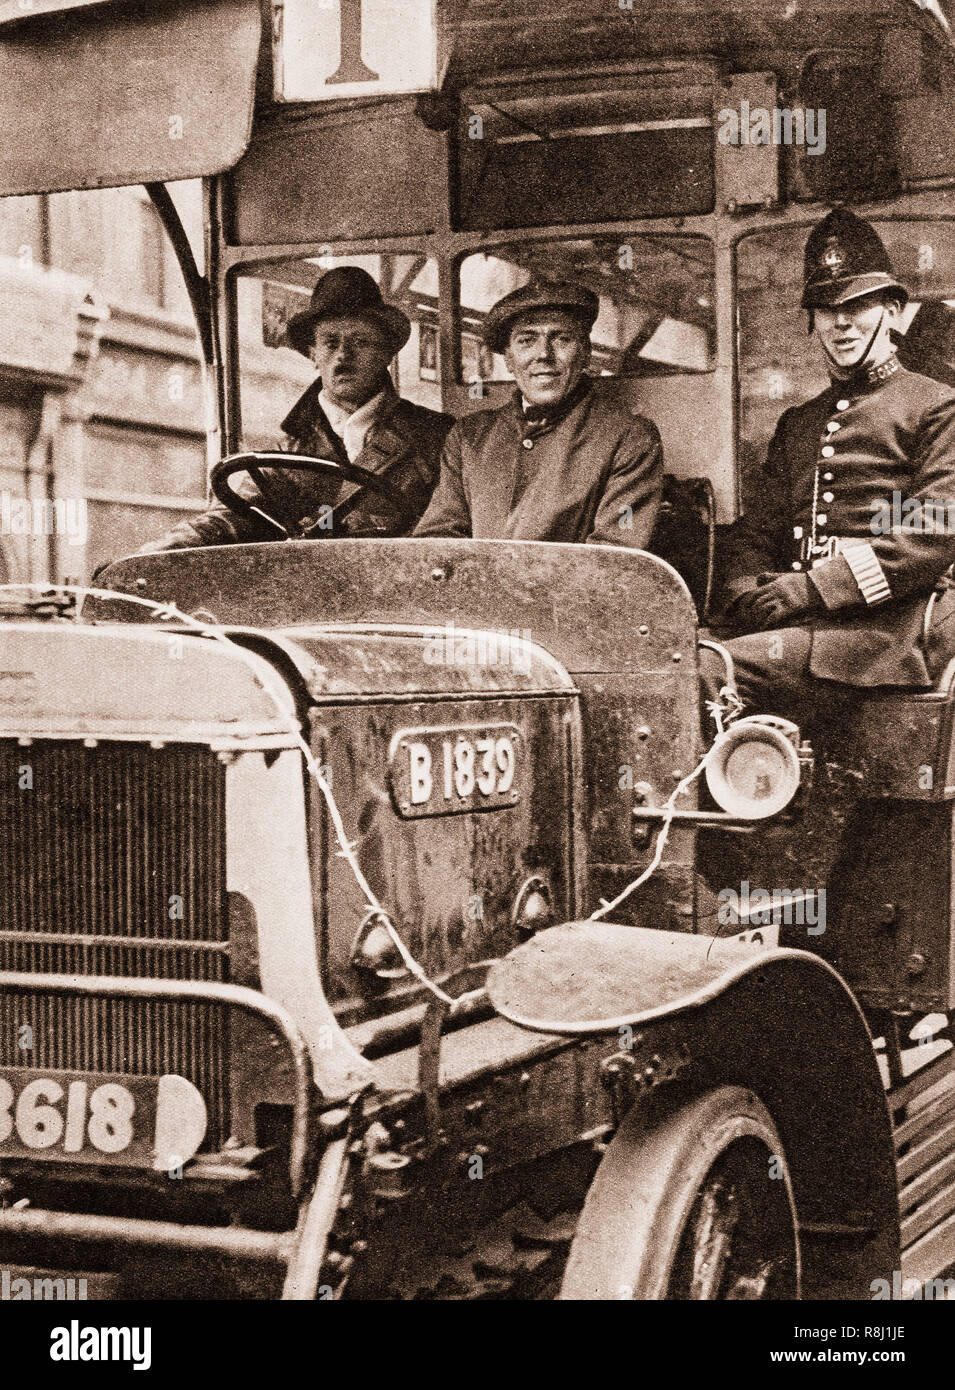 Volunteers transport with police escort during the 1926 general strike in the United Kingdom. The strike, lasting from 3 May 1926 to 12 May 1926, was called by the General Council of the Trades Union Congress (TUC) in an unsuccessful attempt to force the British government to act to prevent wage reduction and worsening conditions for 1.2 million locked-out coal miners. Some 1.7 million workers went out, especially in transport and heavy industry. - Stock Image